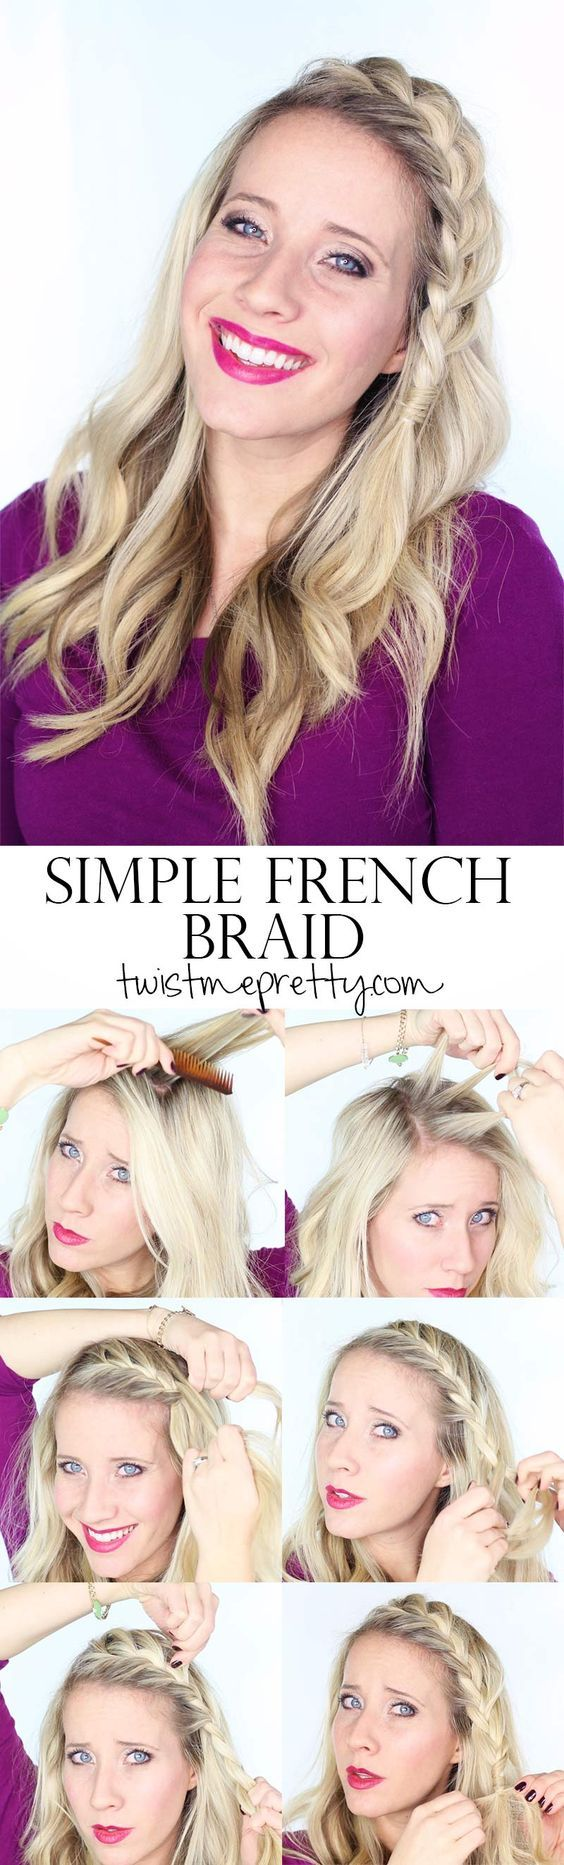 One of the things I love about front French braids (besides how pretty they look) is that they're fairly easy to do because you canactually see what you're doing. There's no feeling around at the back of your head, hoping that you're forming a plait. You can look in the mirror and seeexactlywhat's going on.